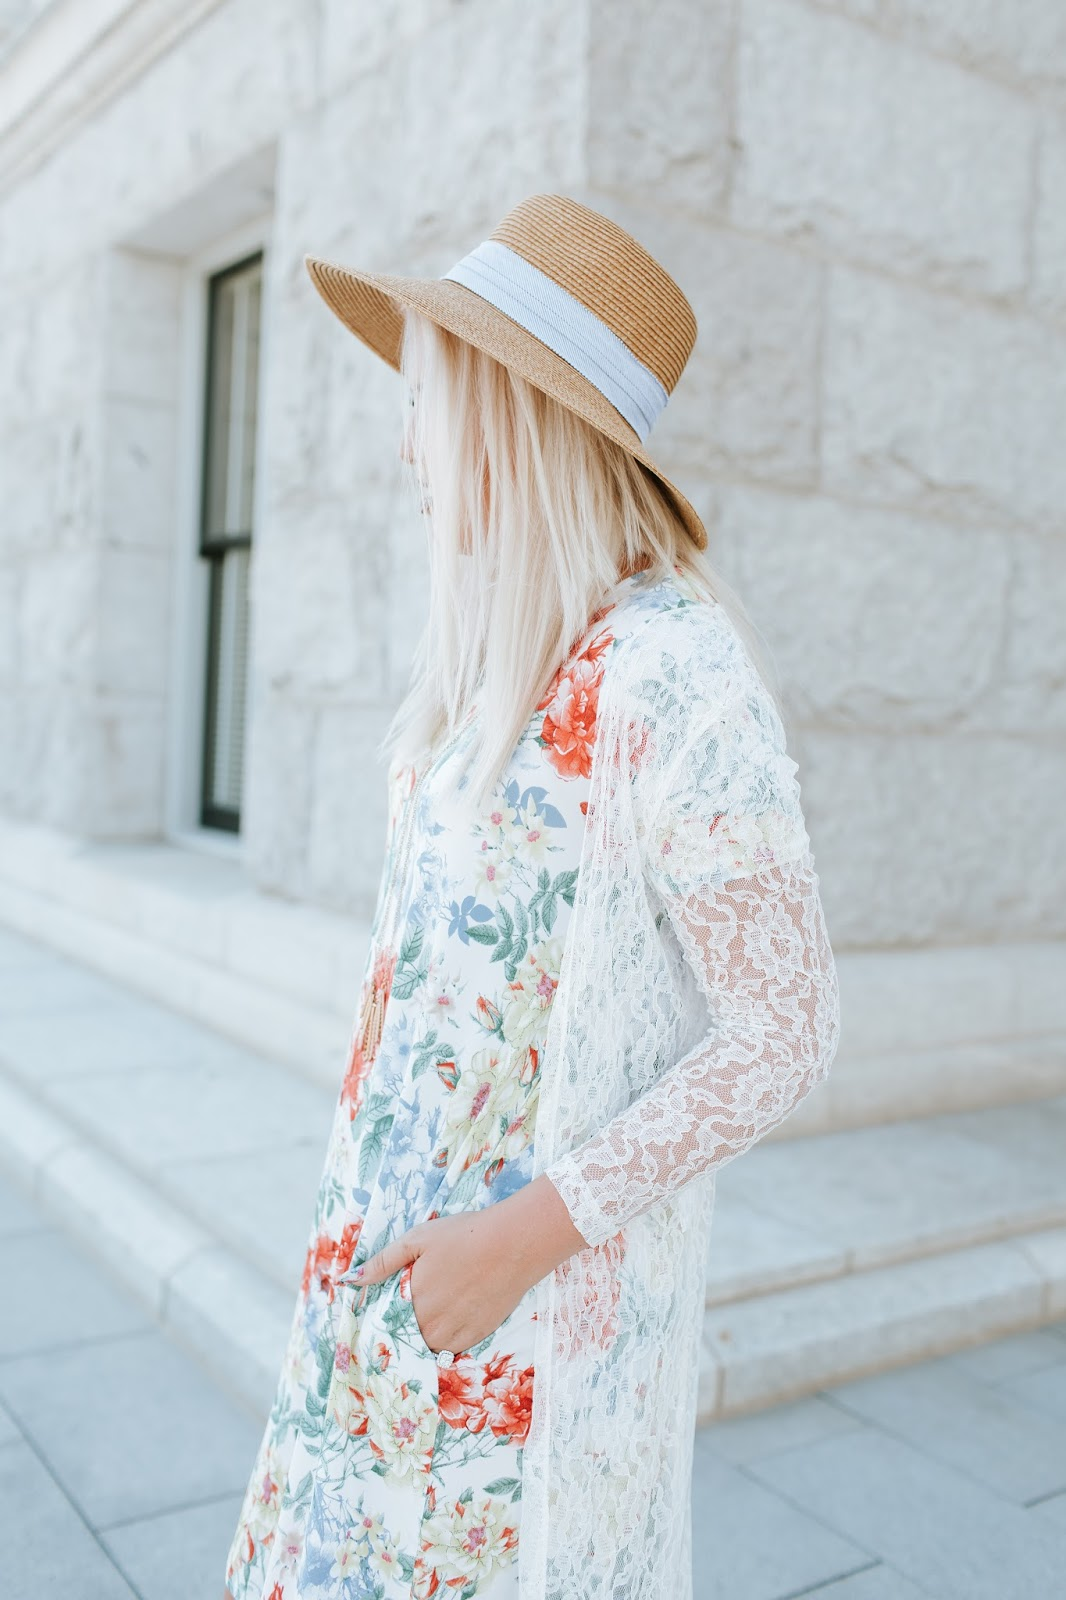 Lace Sleeves, Tall Girl, Floral